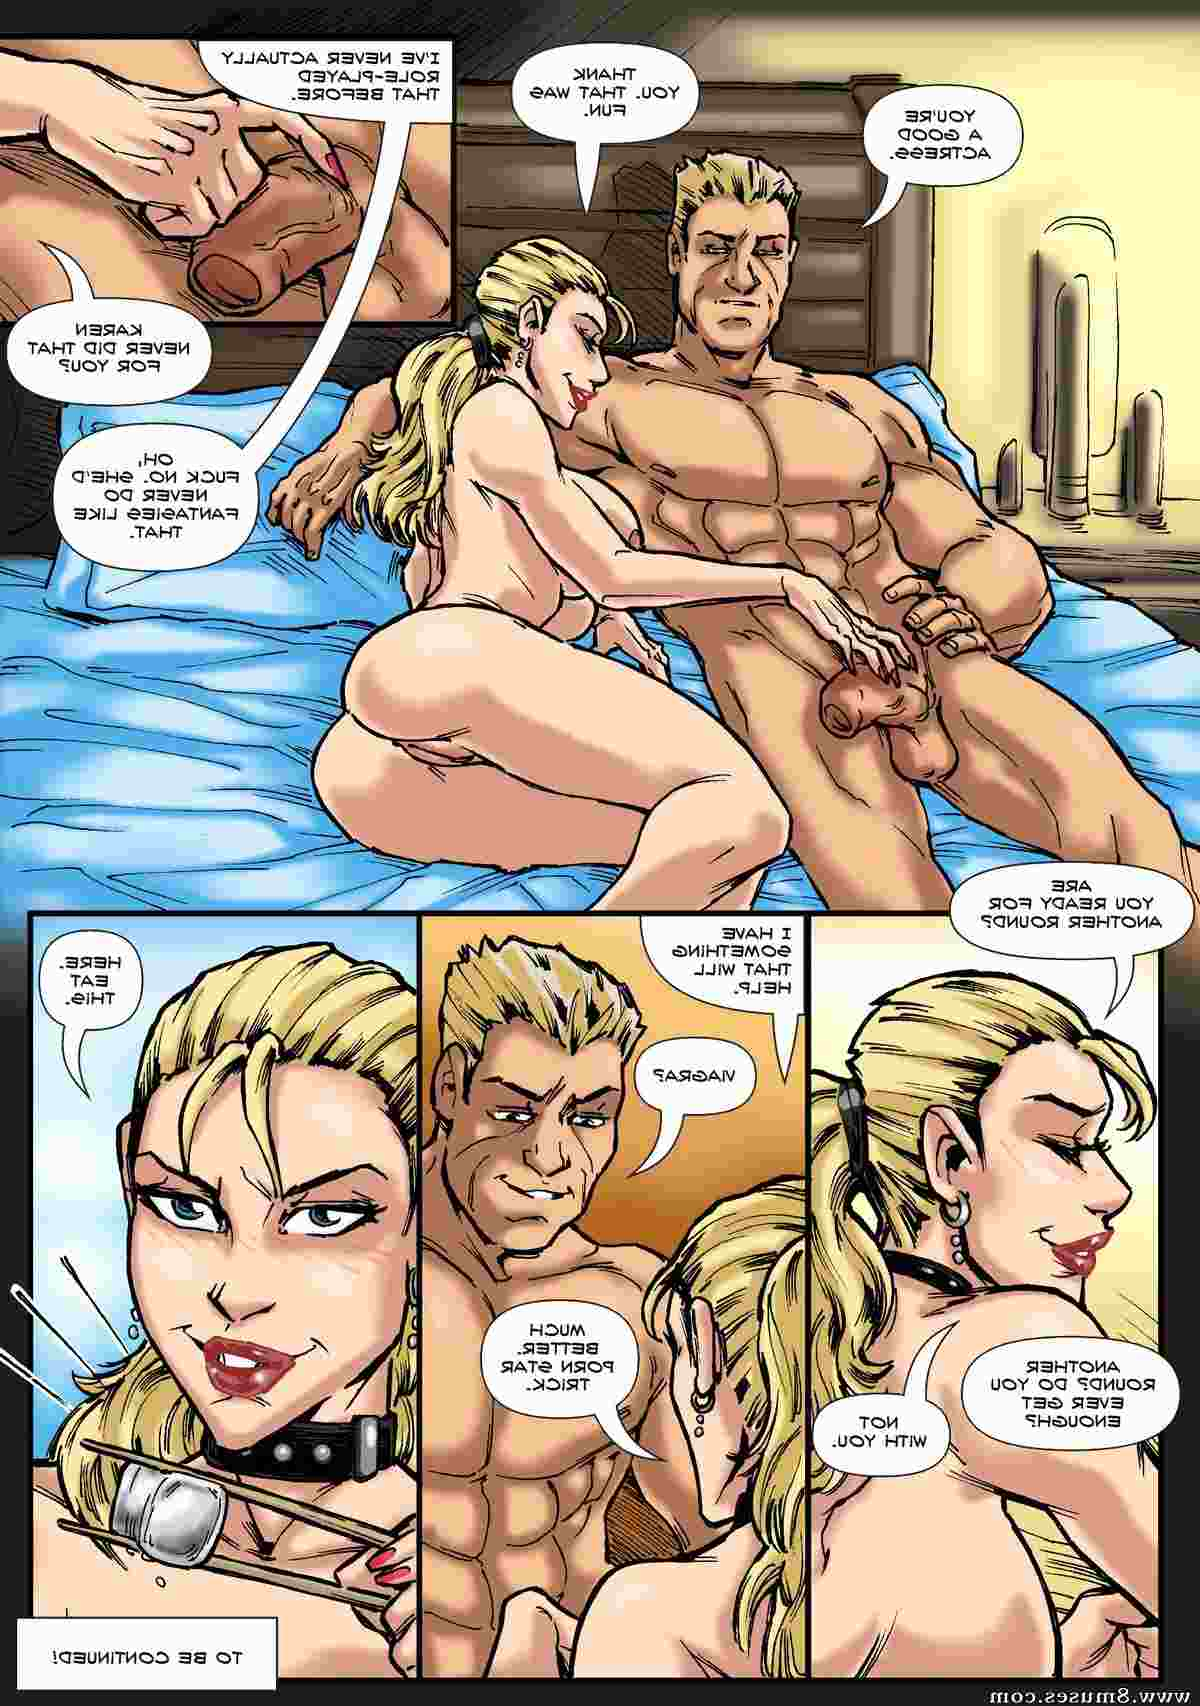 Lost Weekend Issue 2 | Sex Comics